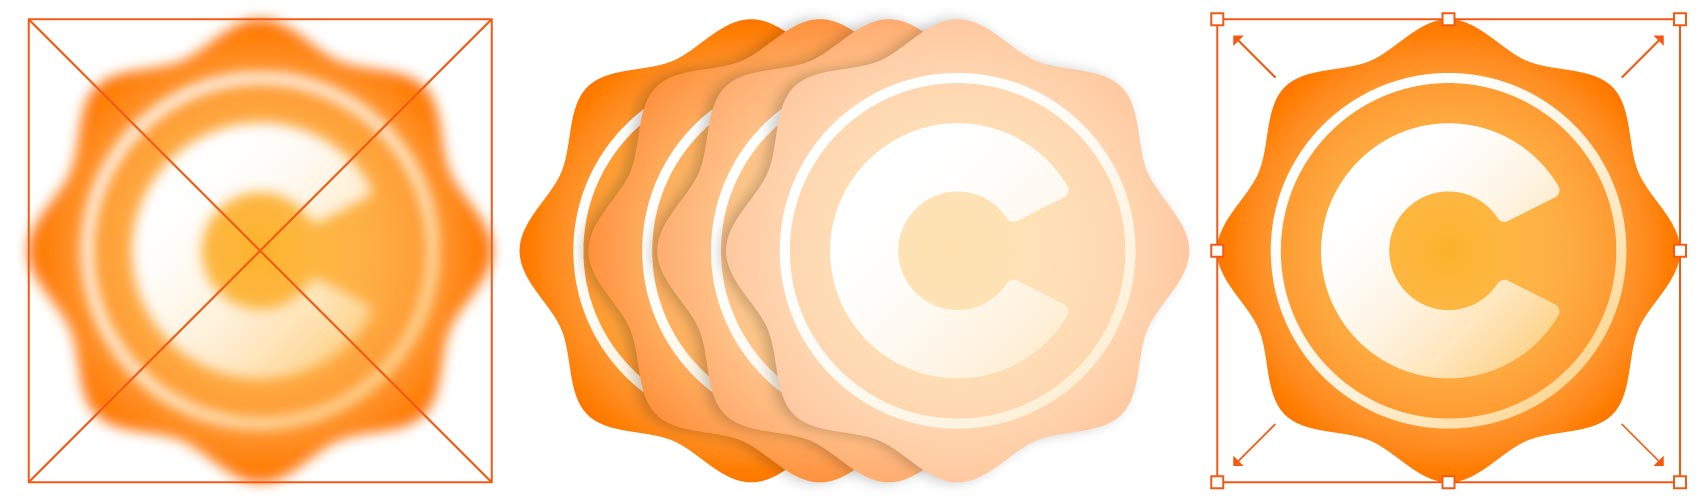 Guidelines for watermarking